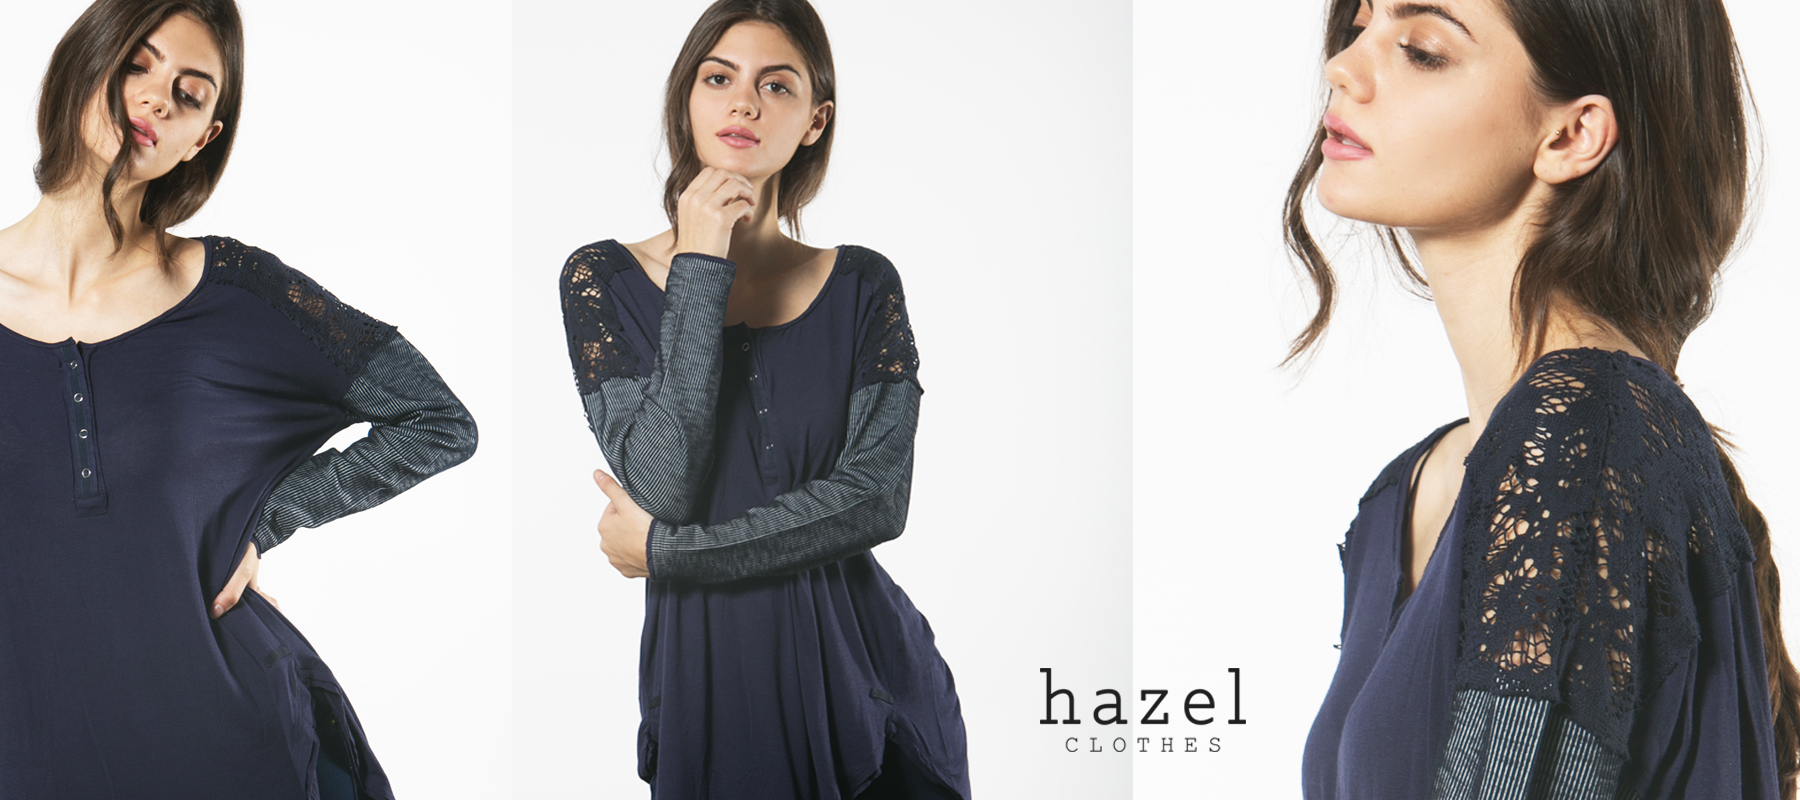 hazel clothes slide3